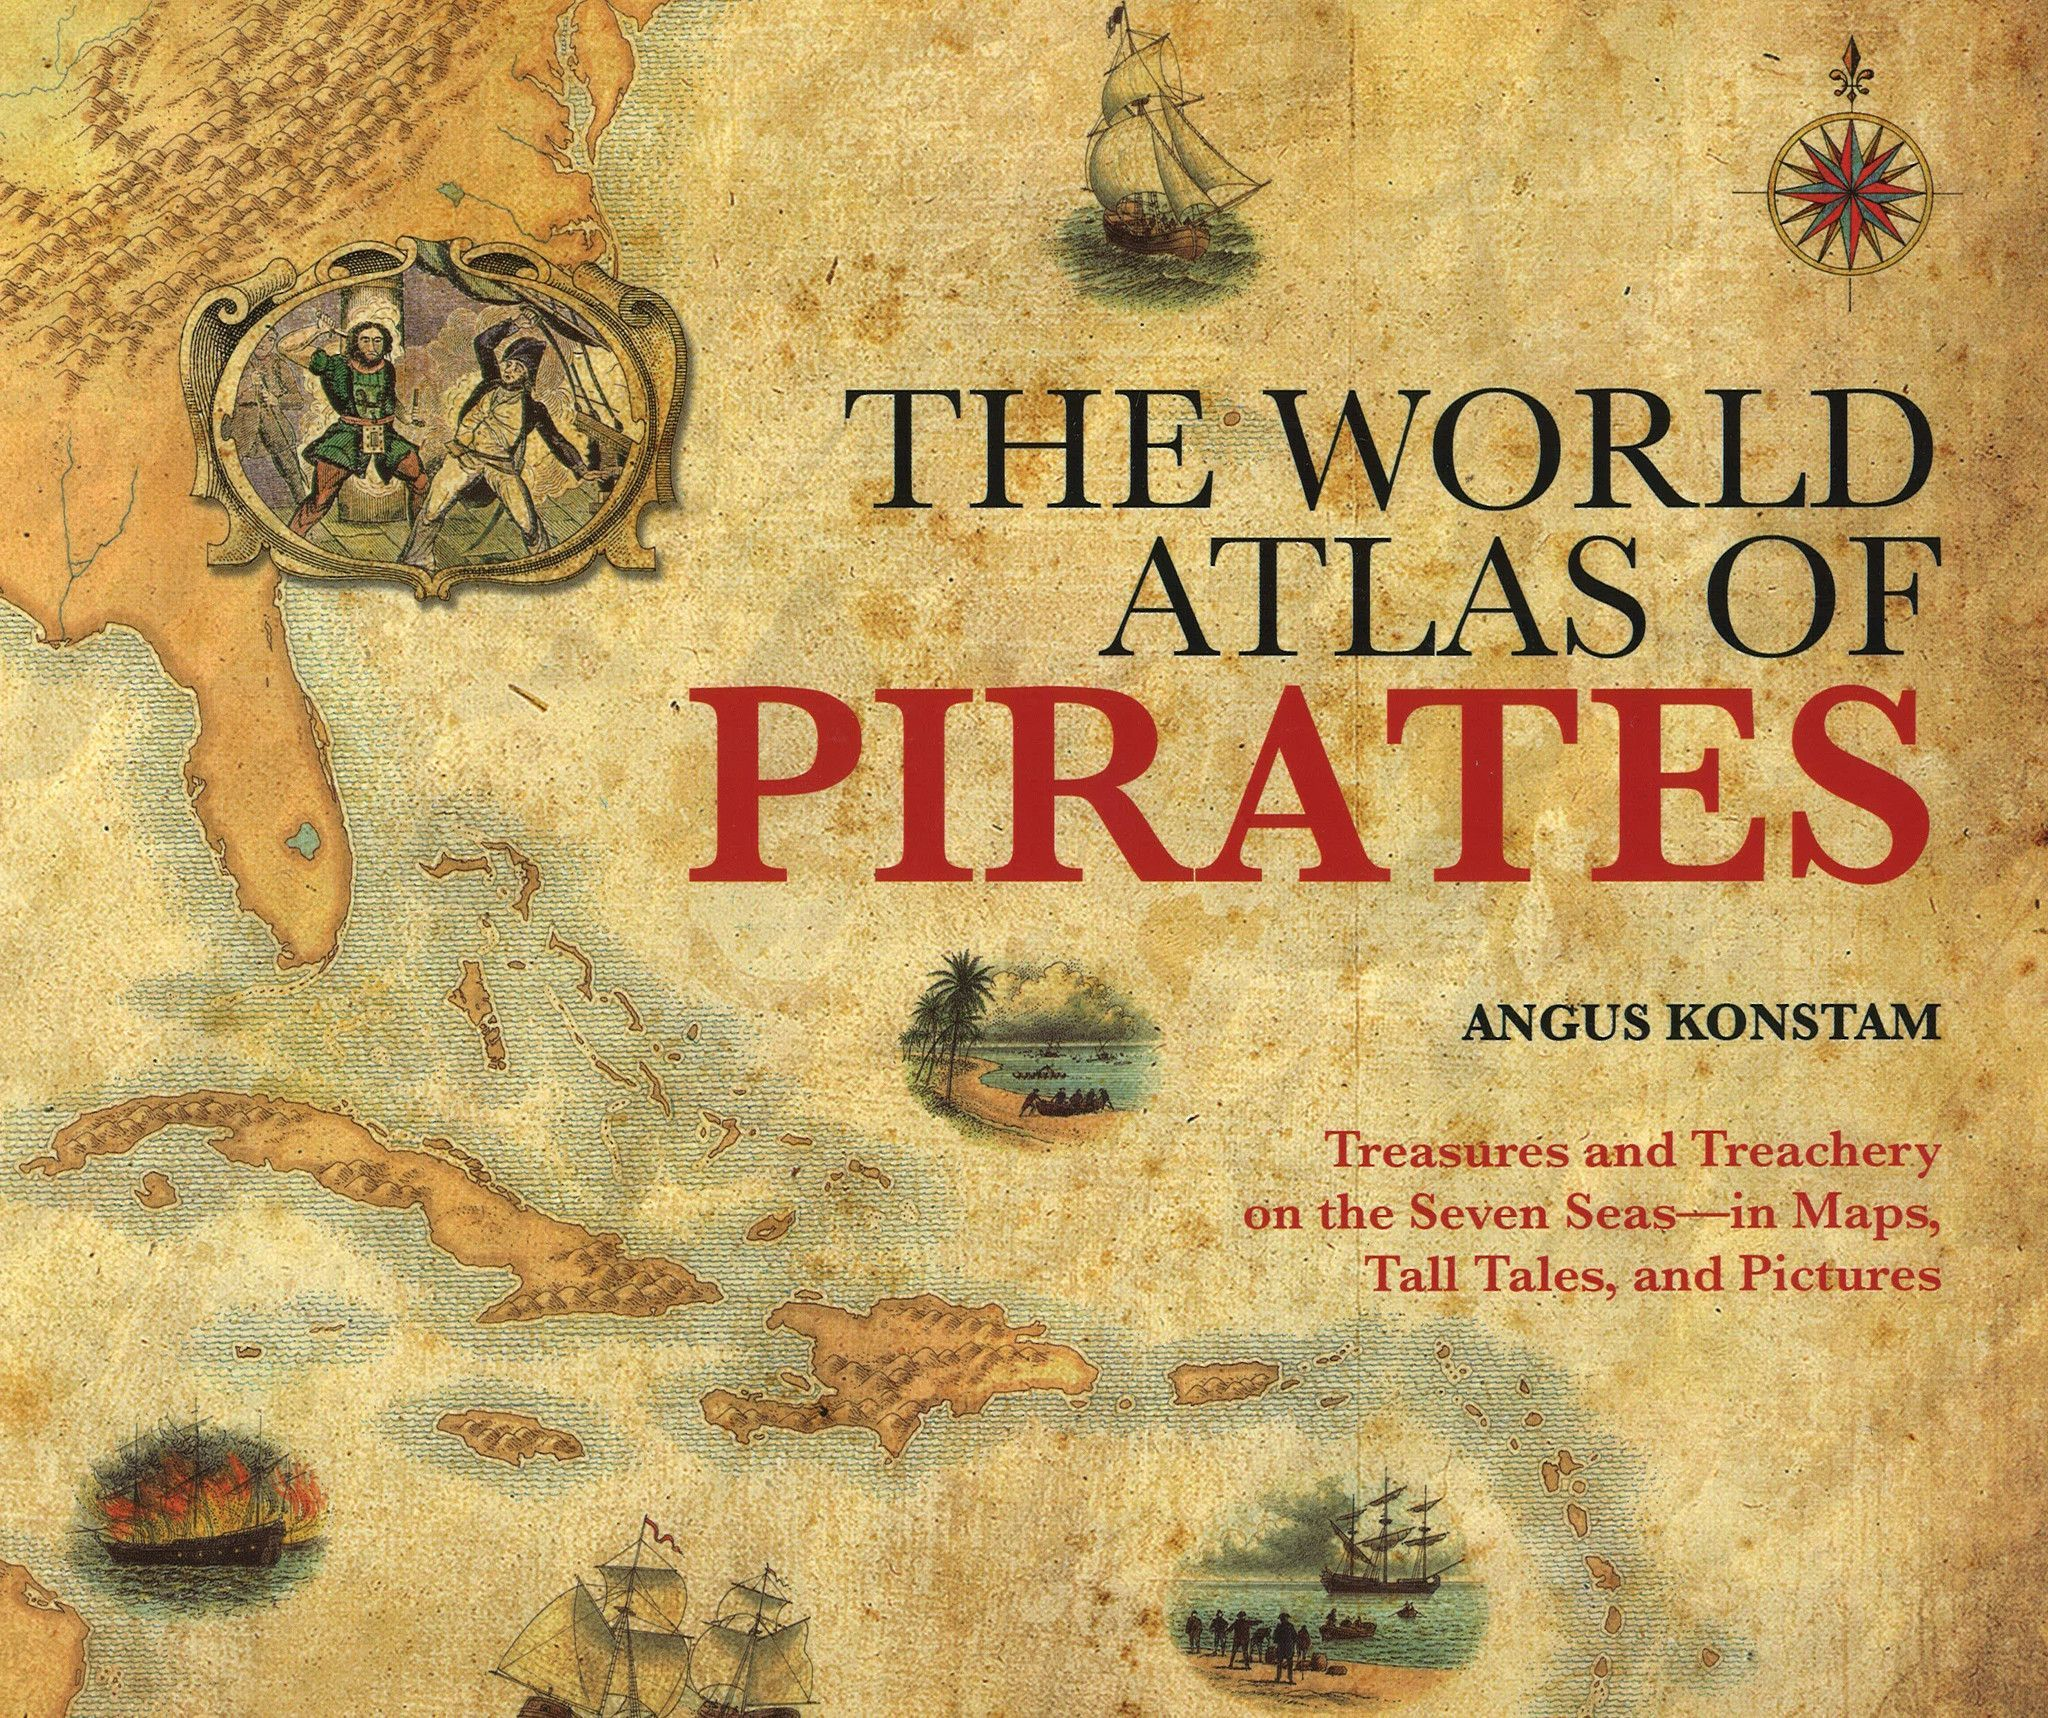 The world atlas of pirates treasures and treachery on the seven the world atlas of pirates treasures and treachery on the seven seas in gumiabroncs Images